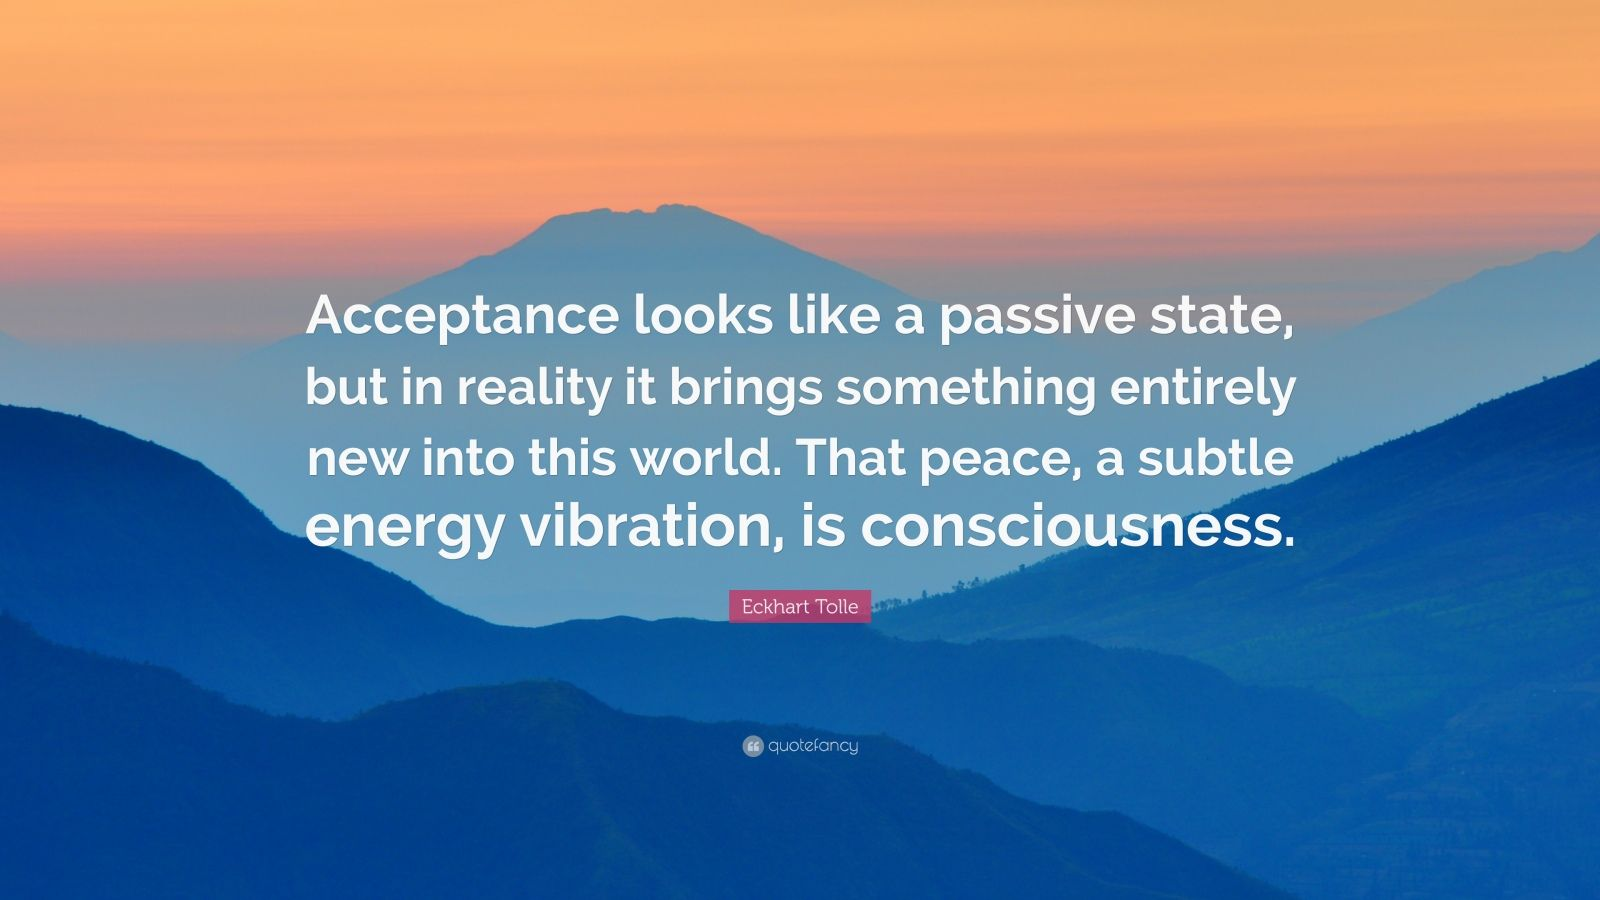 """Eckhart Tolle Quote: """"Acceptance looks like a passive state, but in reality it brings something entirely new into this world. That peace, a subtle energy vibration, is consciousness."""""""